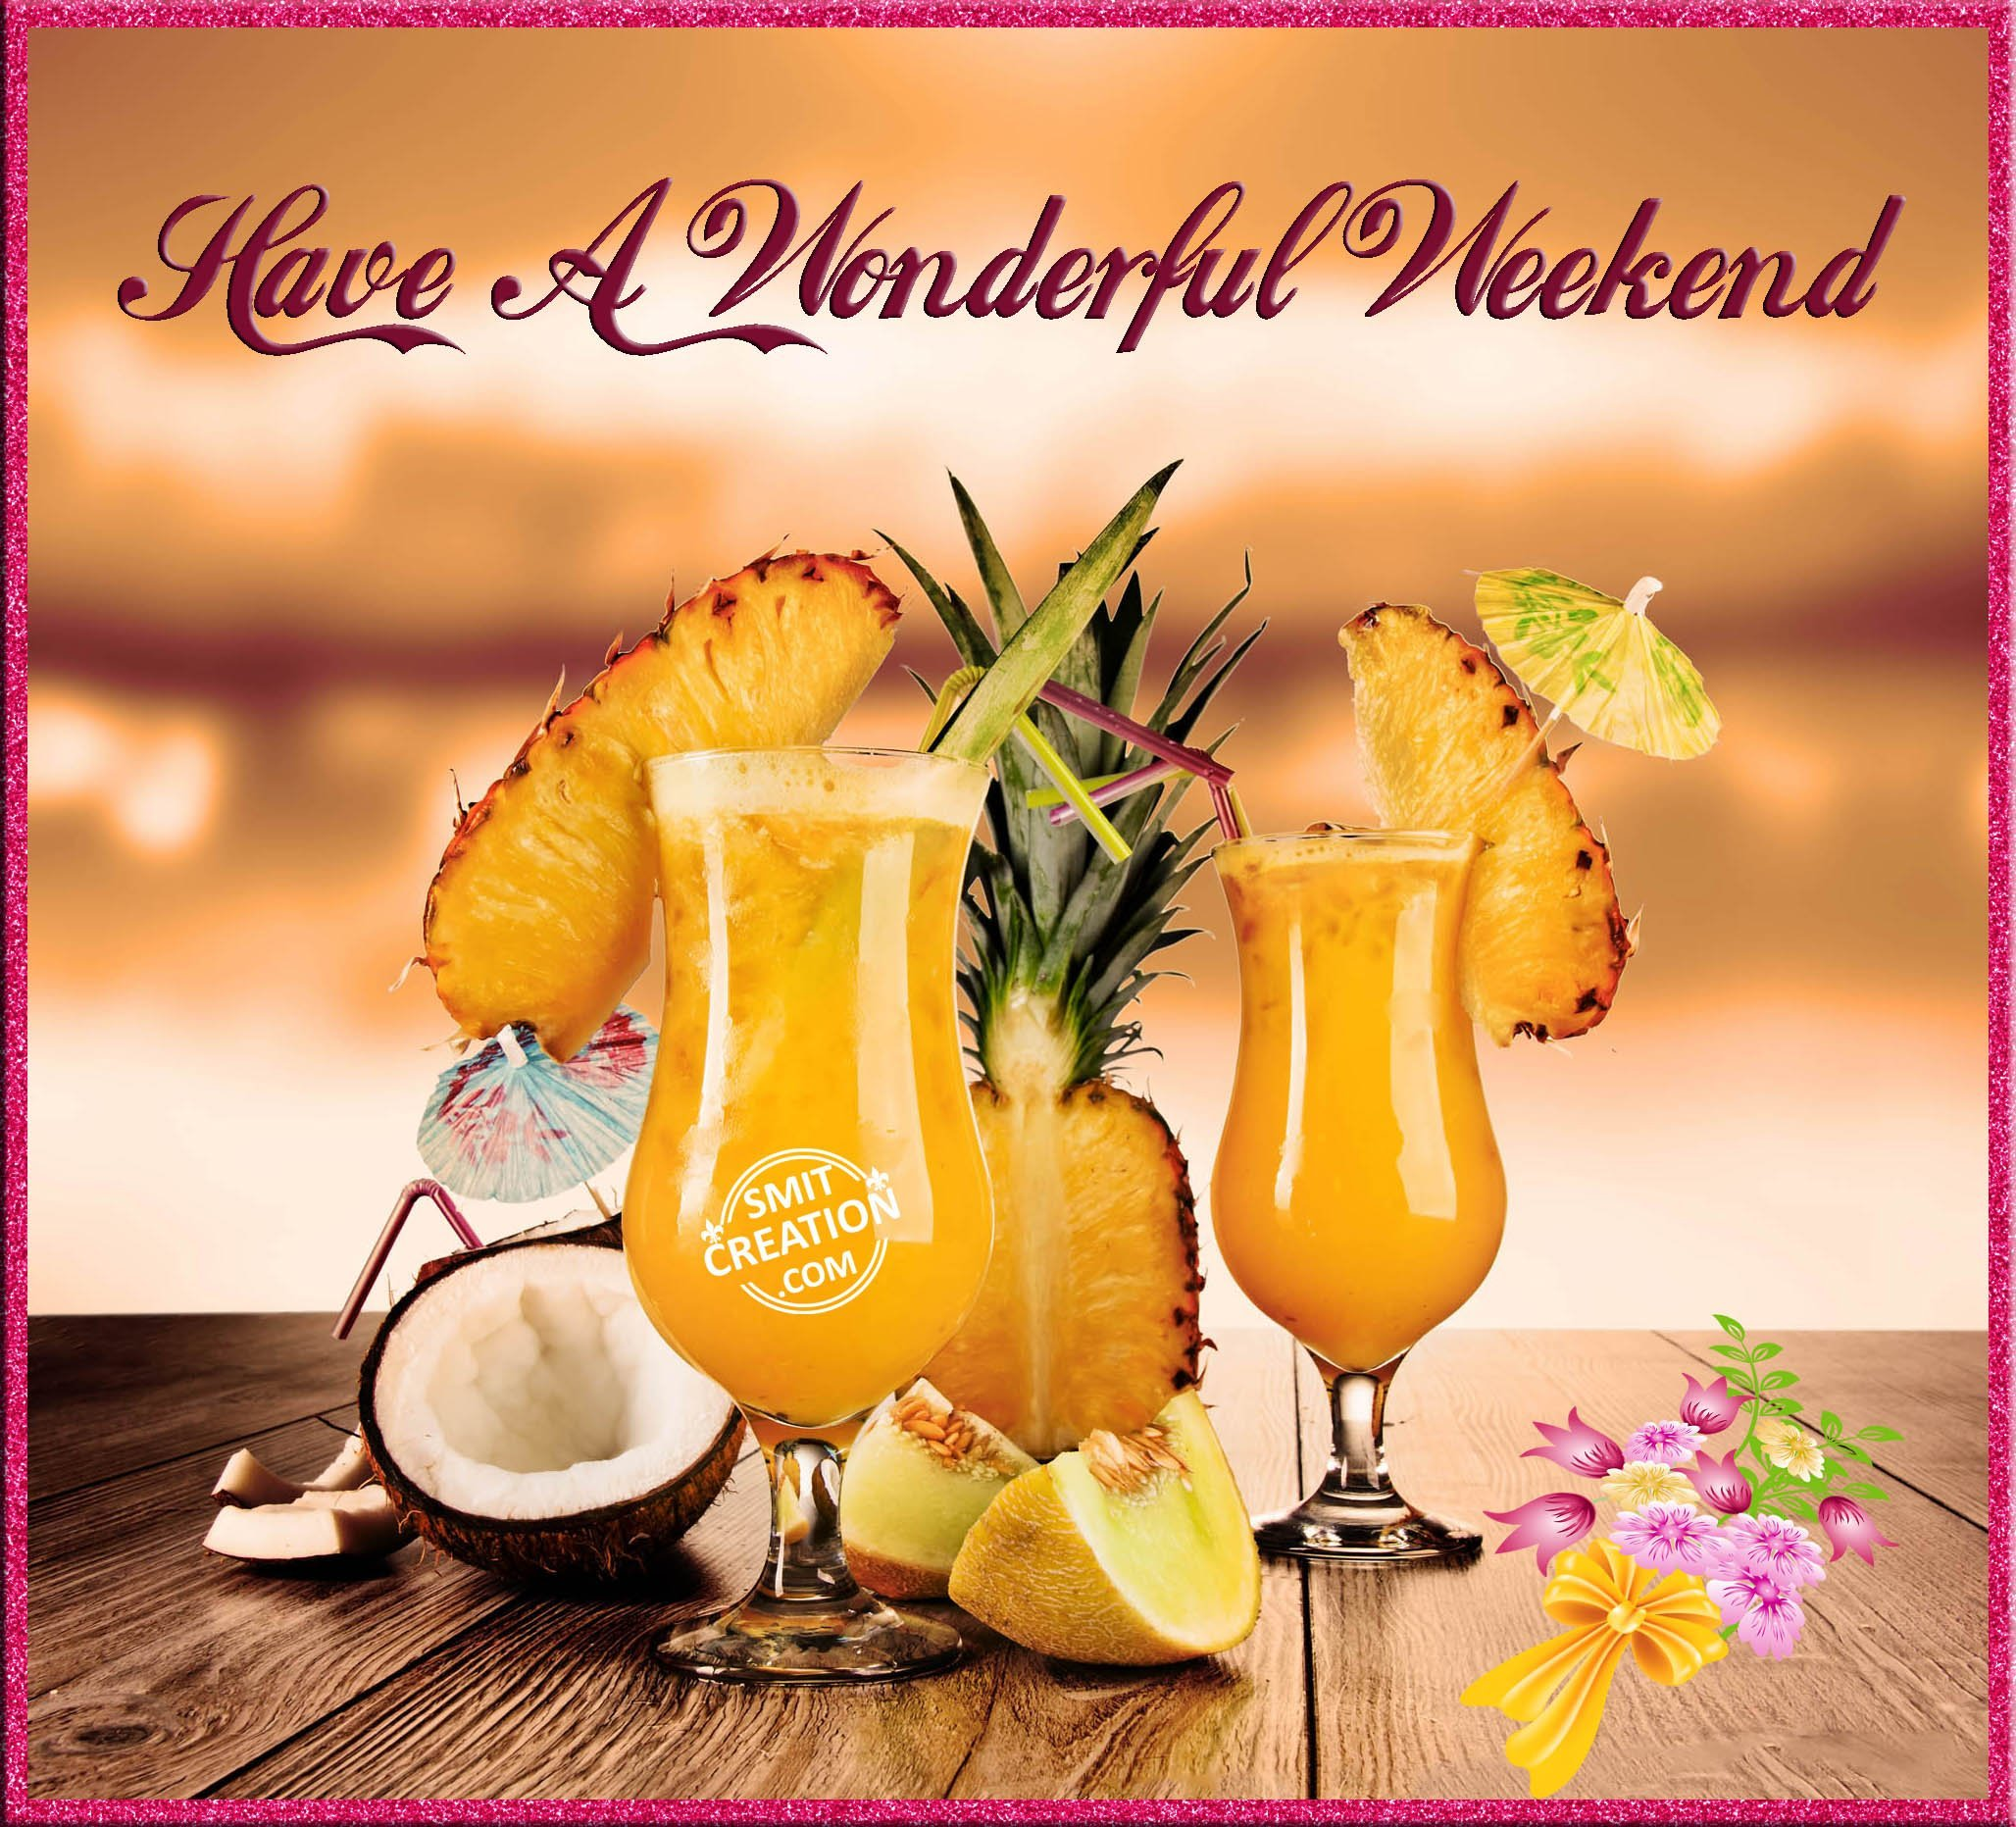 Have A Wonderful Weekend - SmitCreation.com